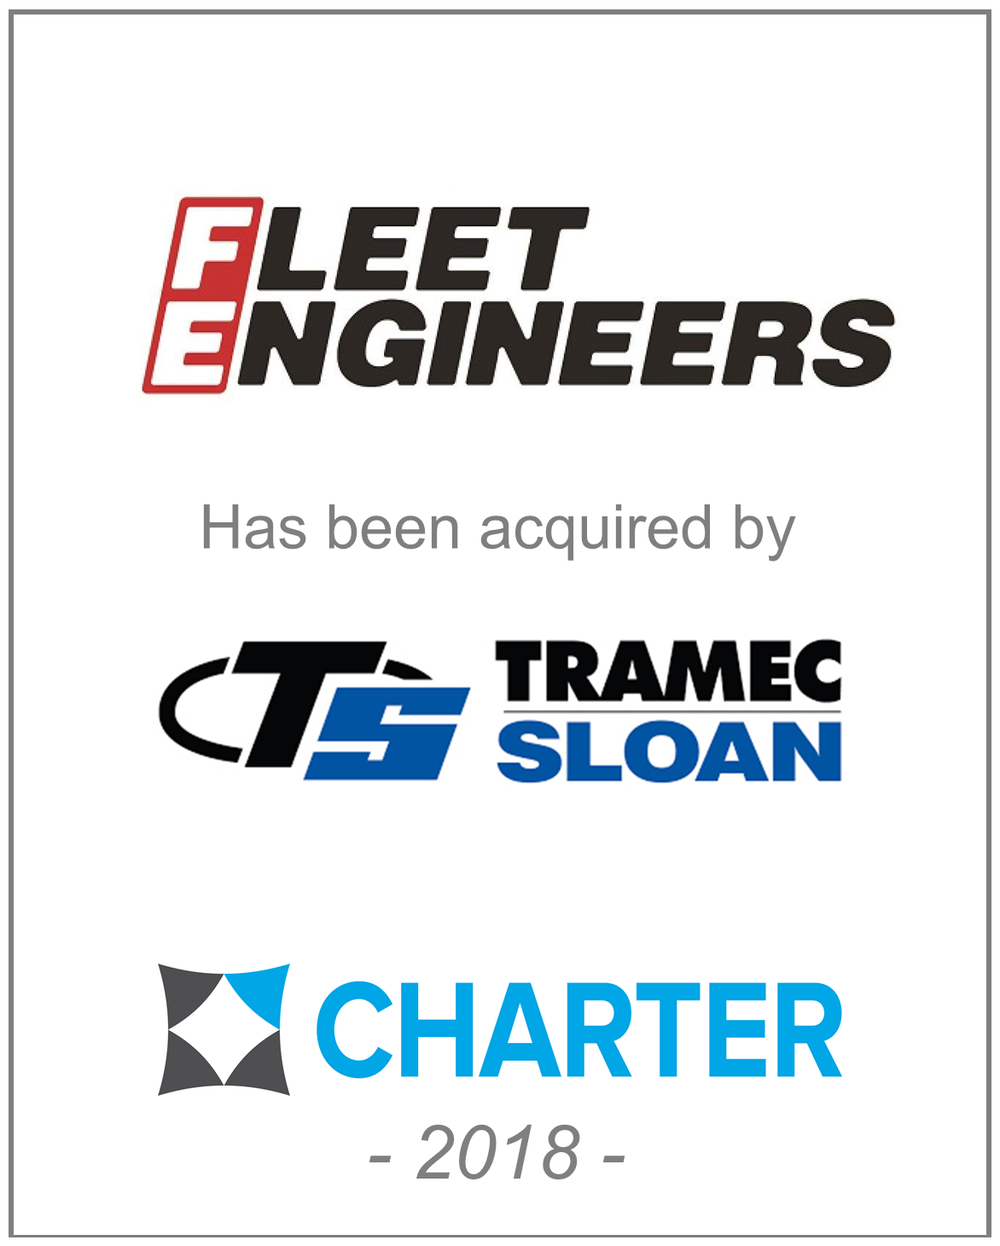 fleetengineers.png